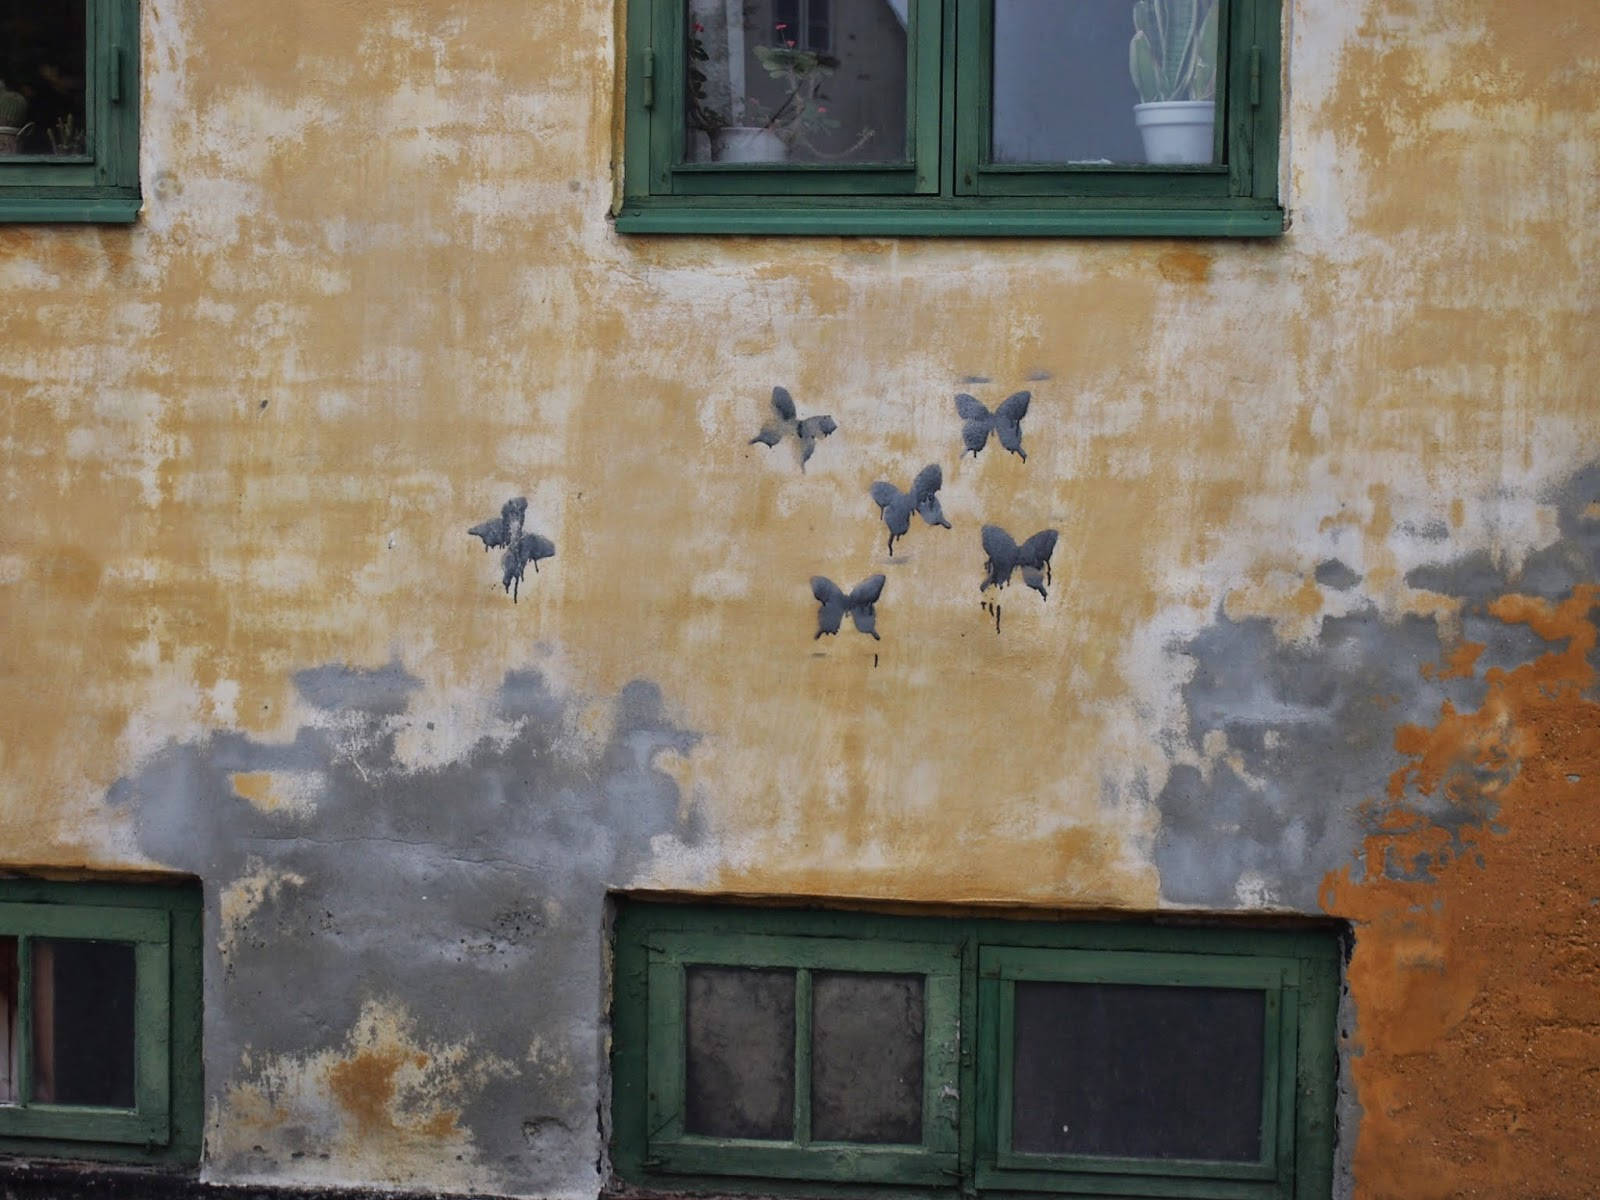 butterfies painted on an old wall in Helsingor